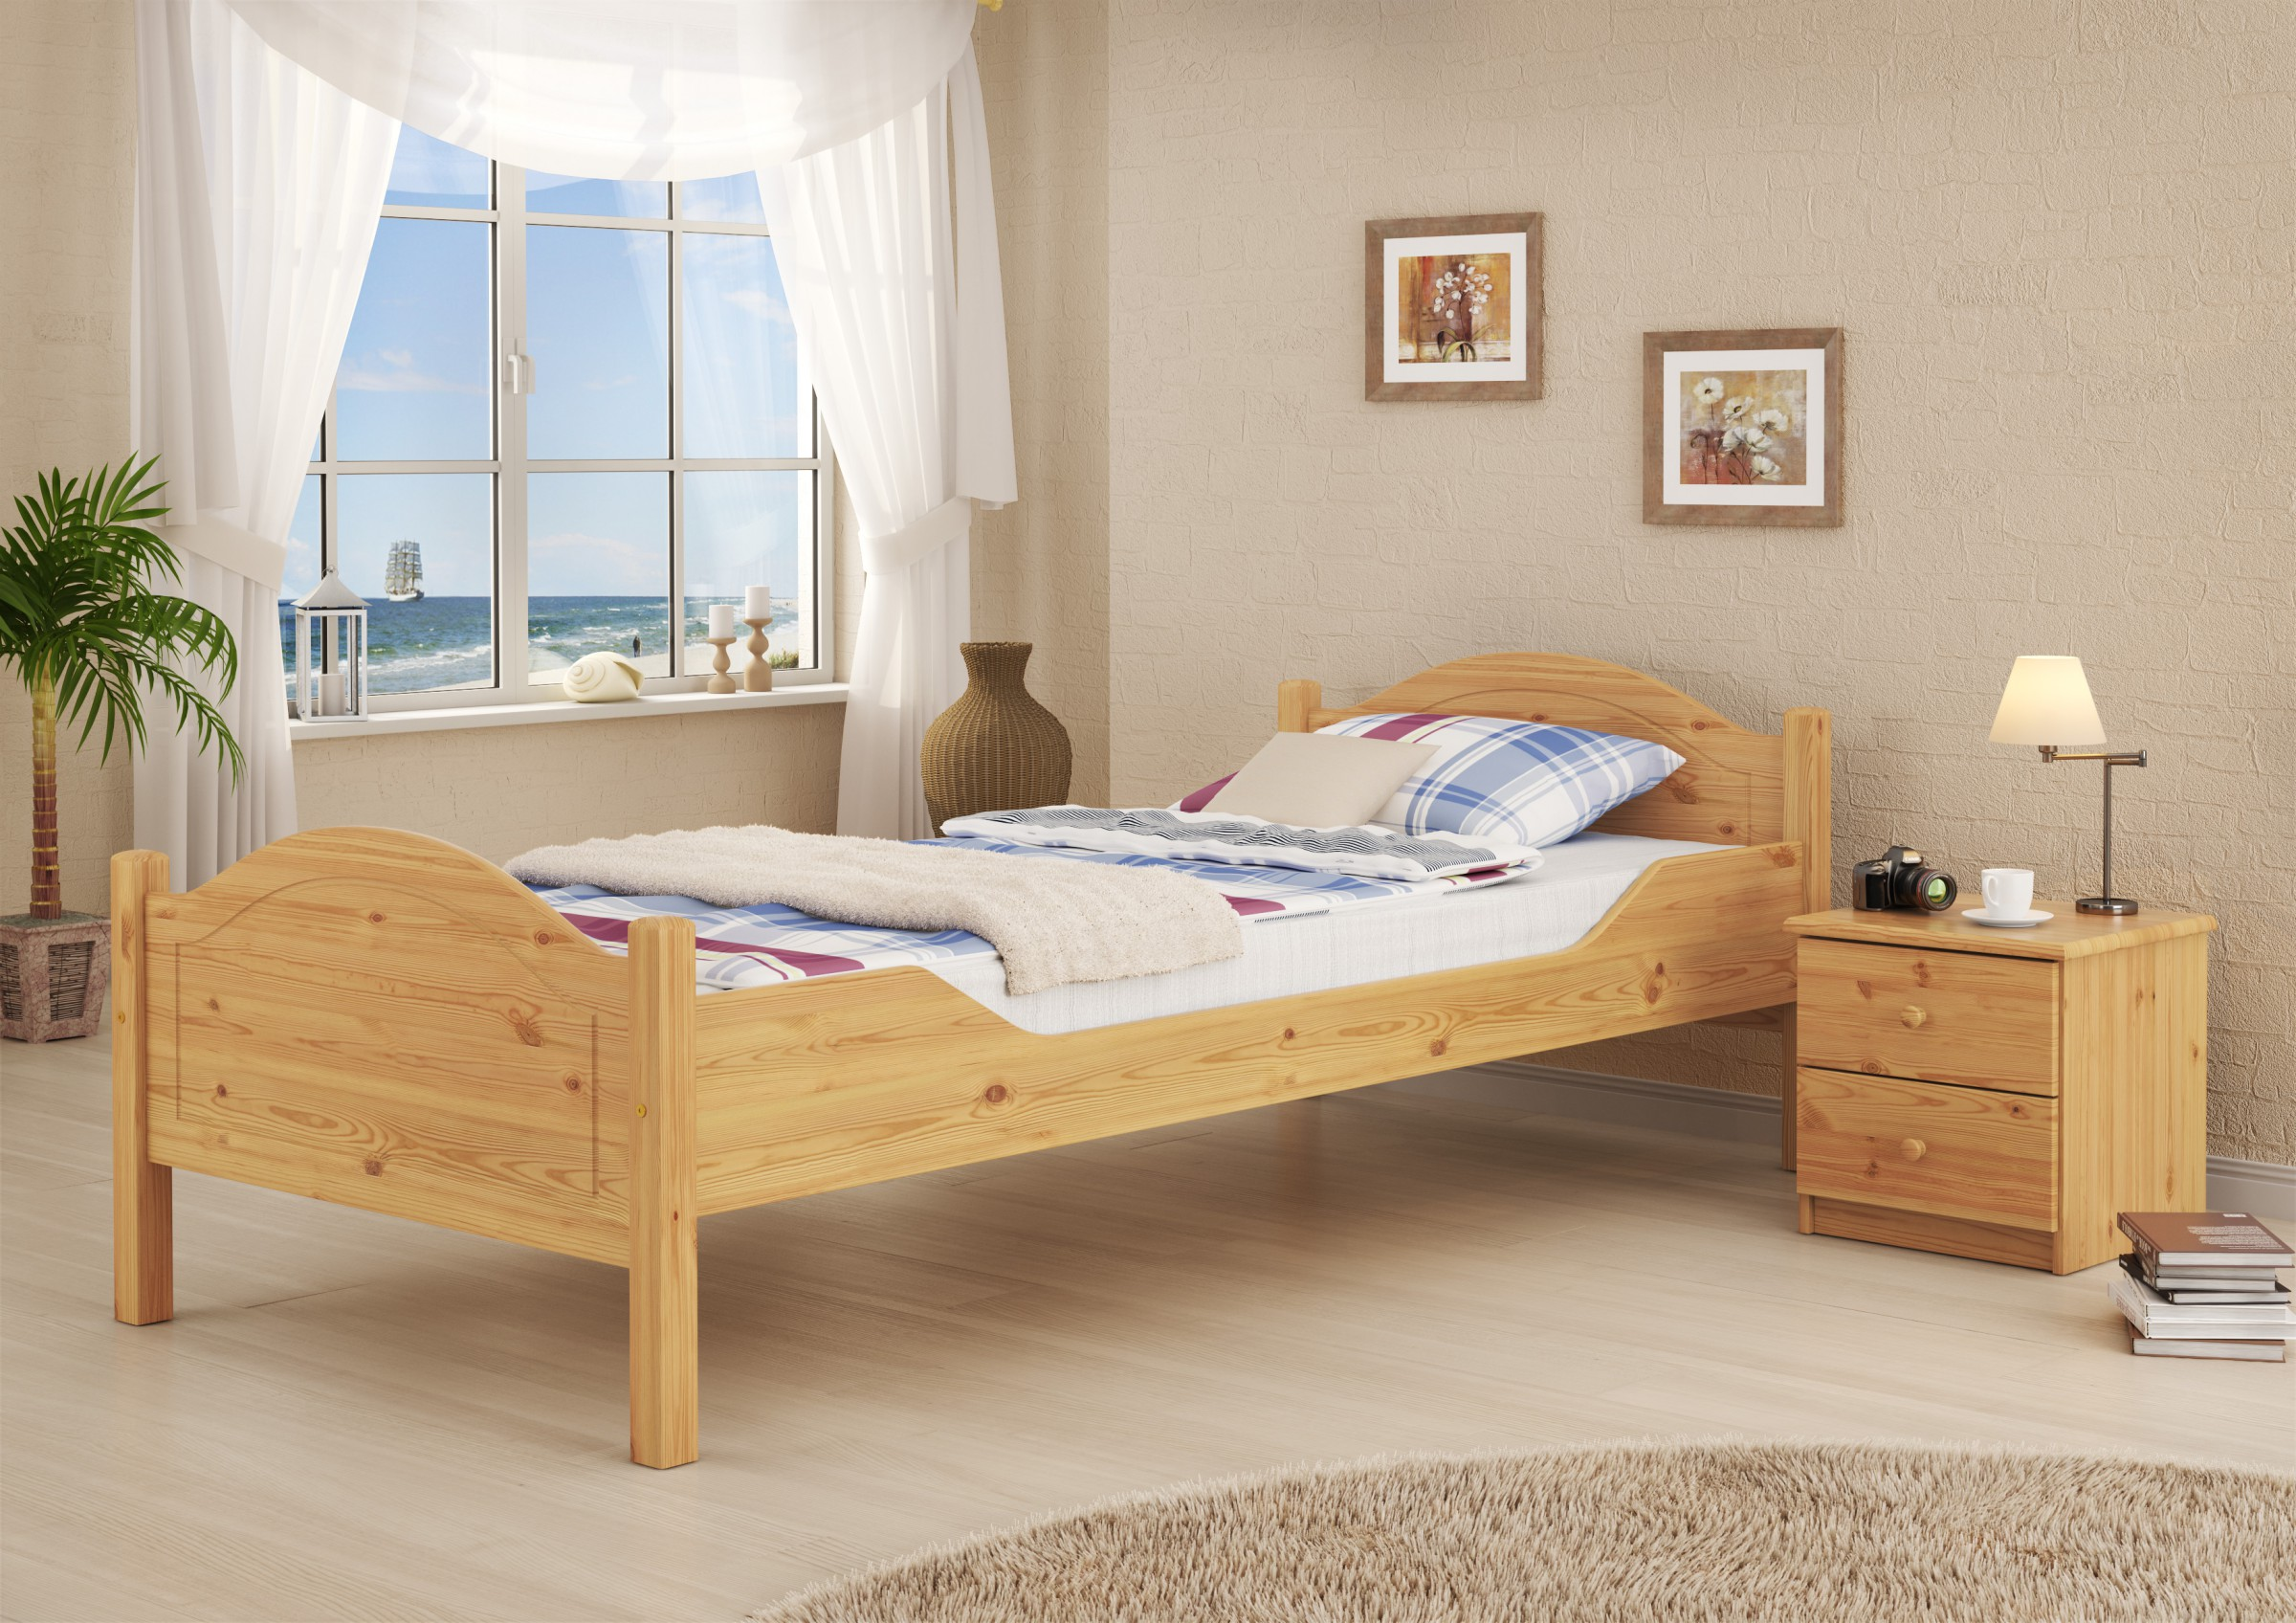 stabiles bett jugendbett kiefer 90x200 ohne lattenrost u zubeh r or ebay. Black Bedroom Furniture Sets. Home Design Ideas